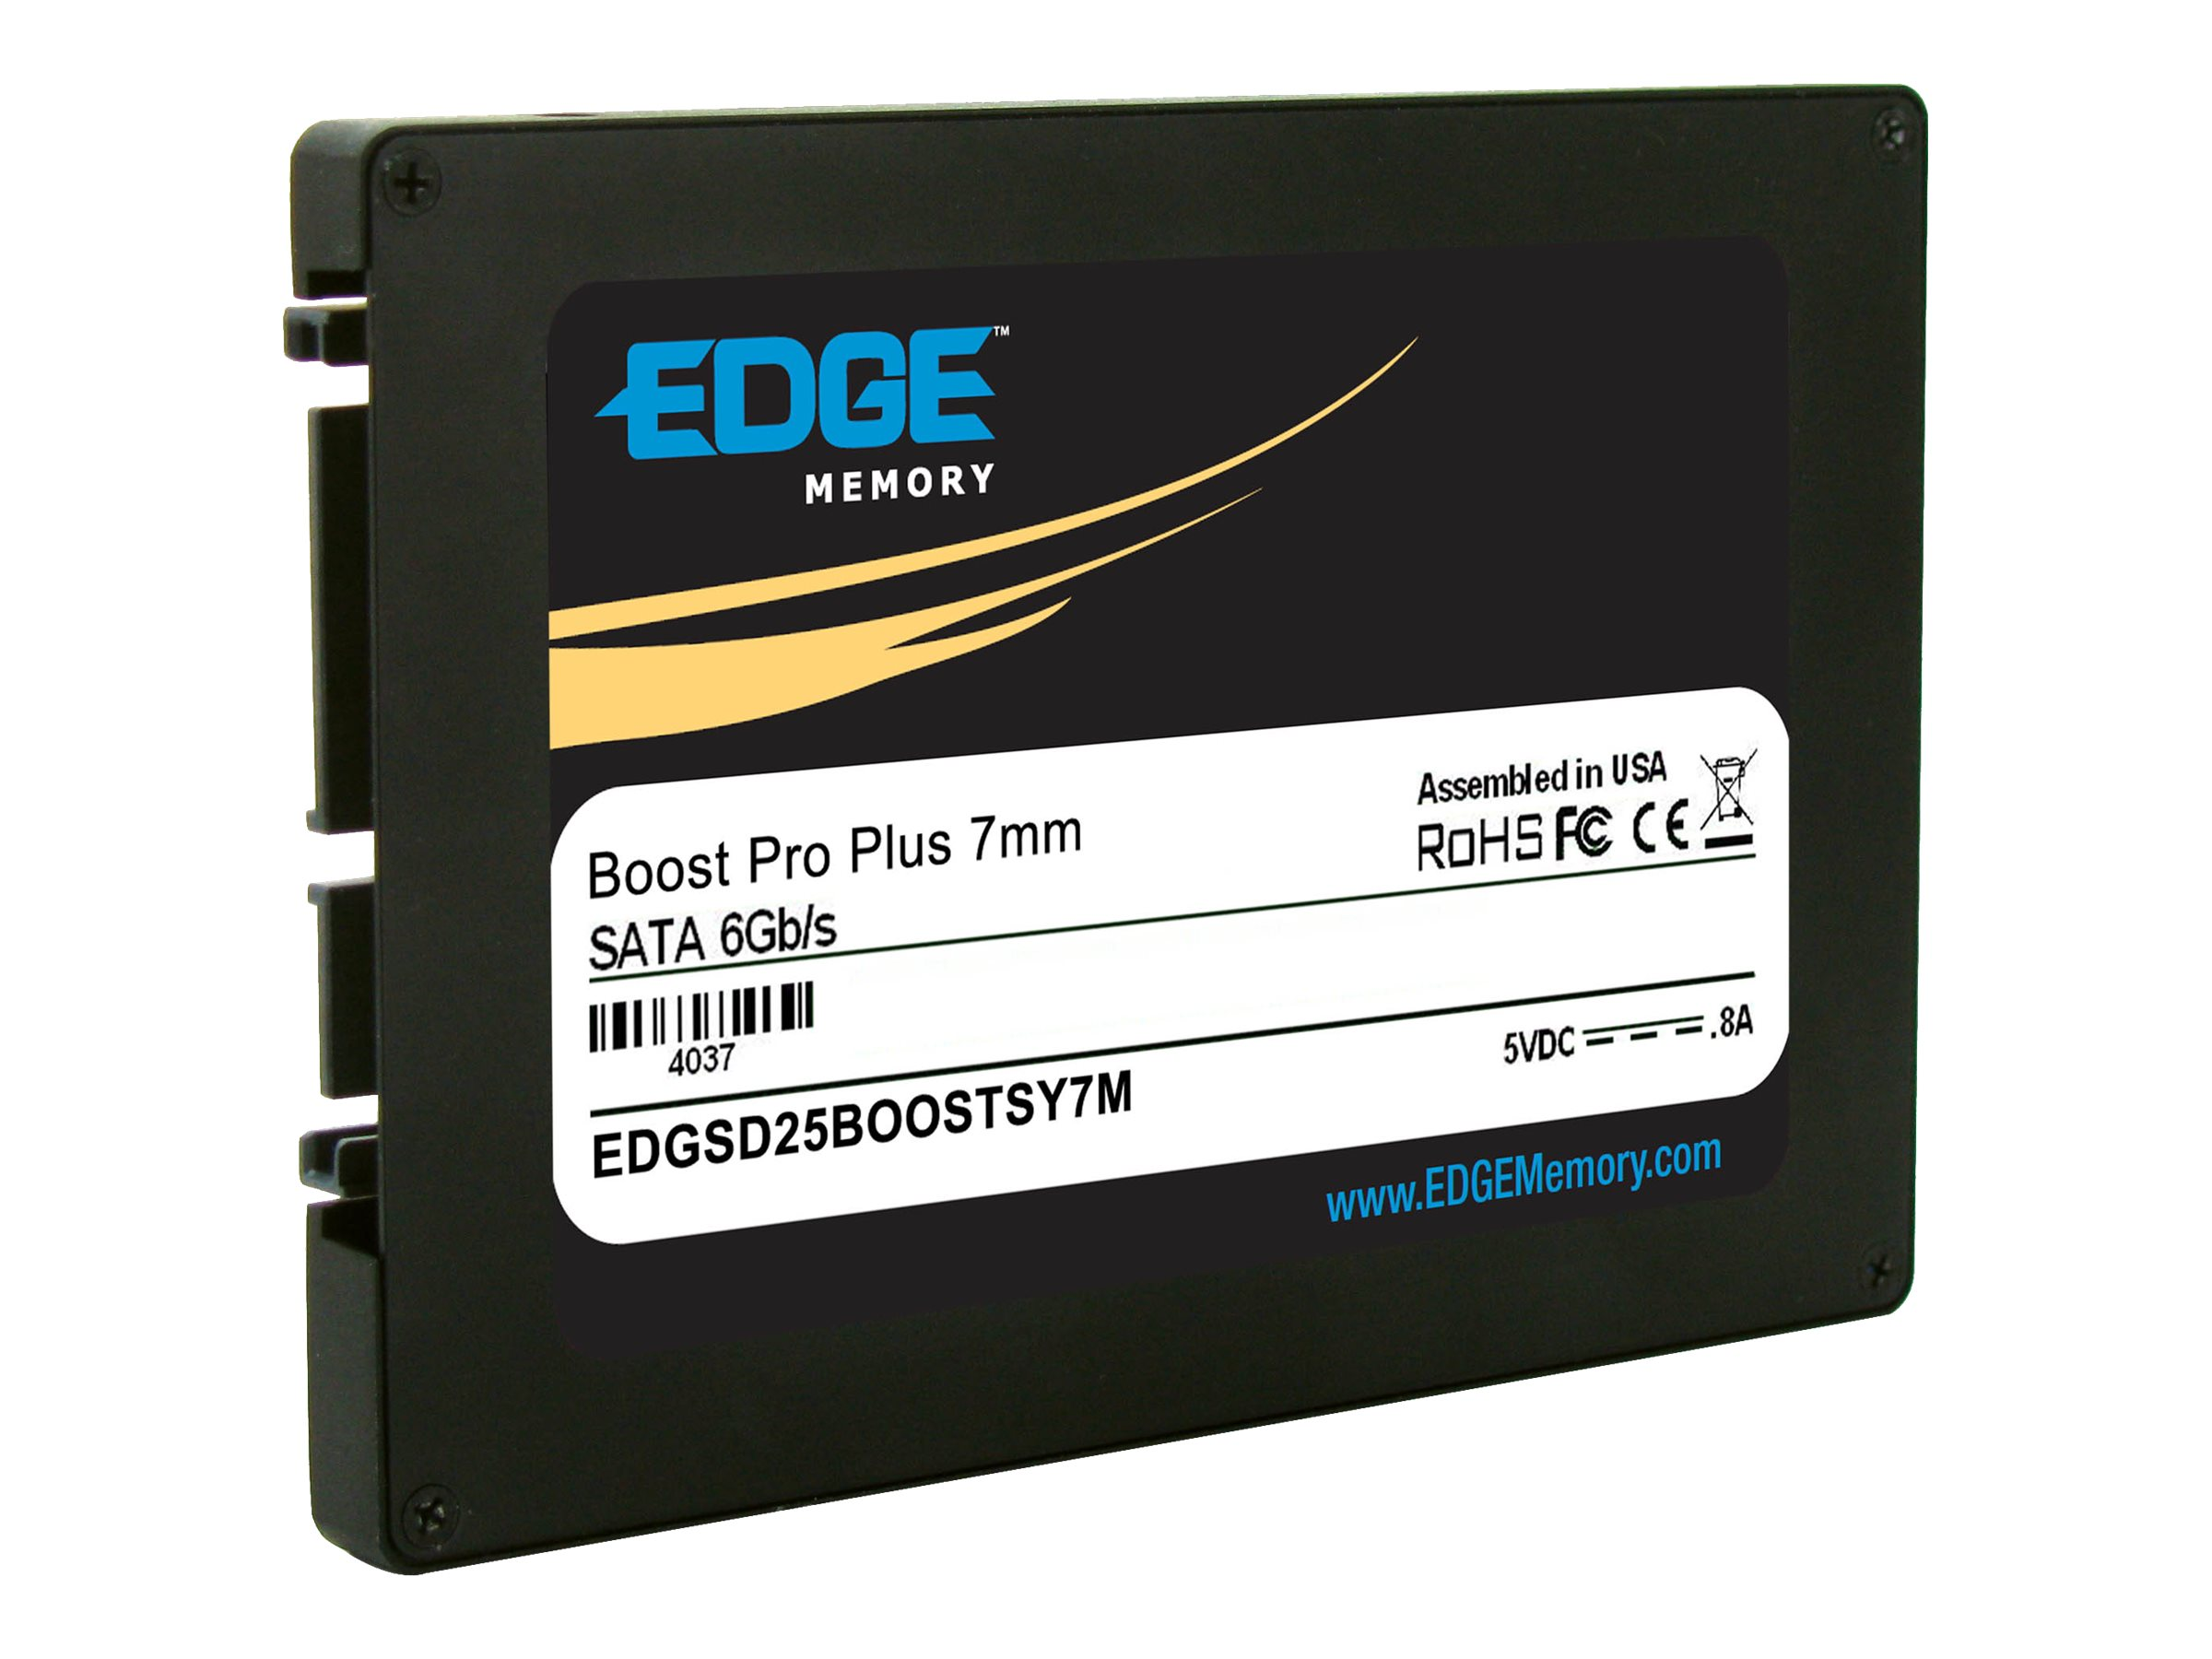 Edge 800GB Boost Pro Plus SATA 6Gb s Sync 2.5 7mm Internal Solid State Drive, PE245610, 18454393, Solid State Drives - Internal